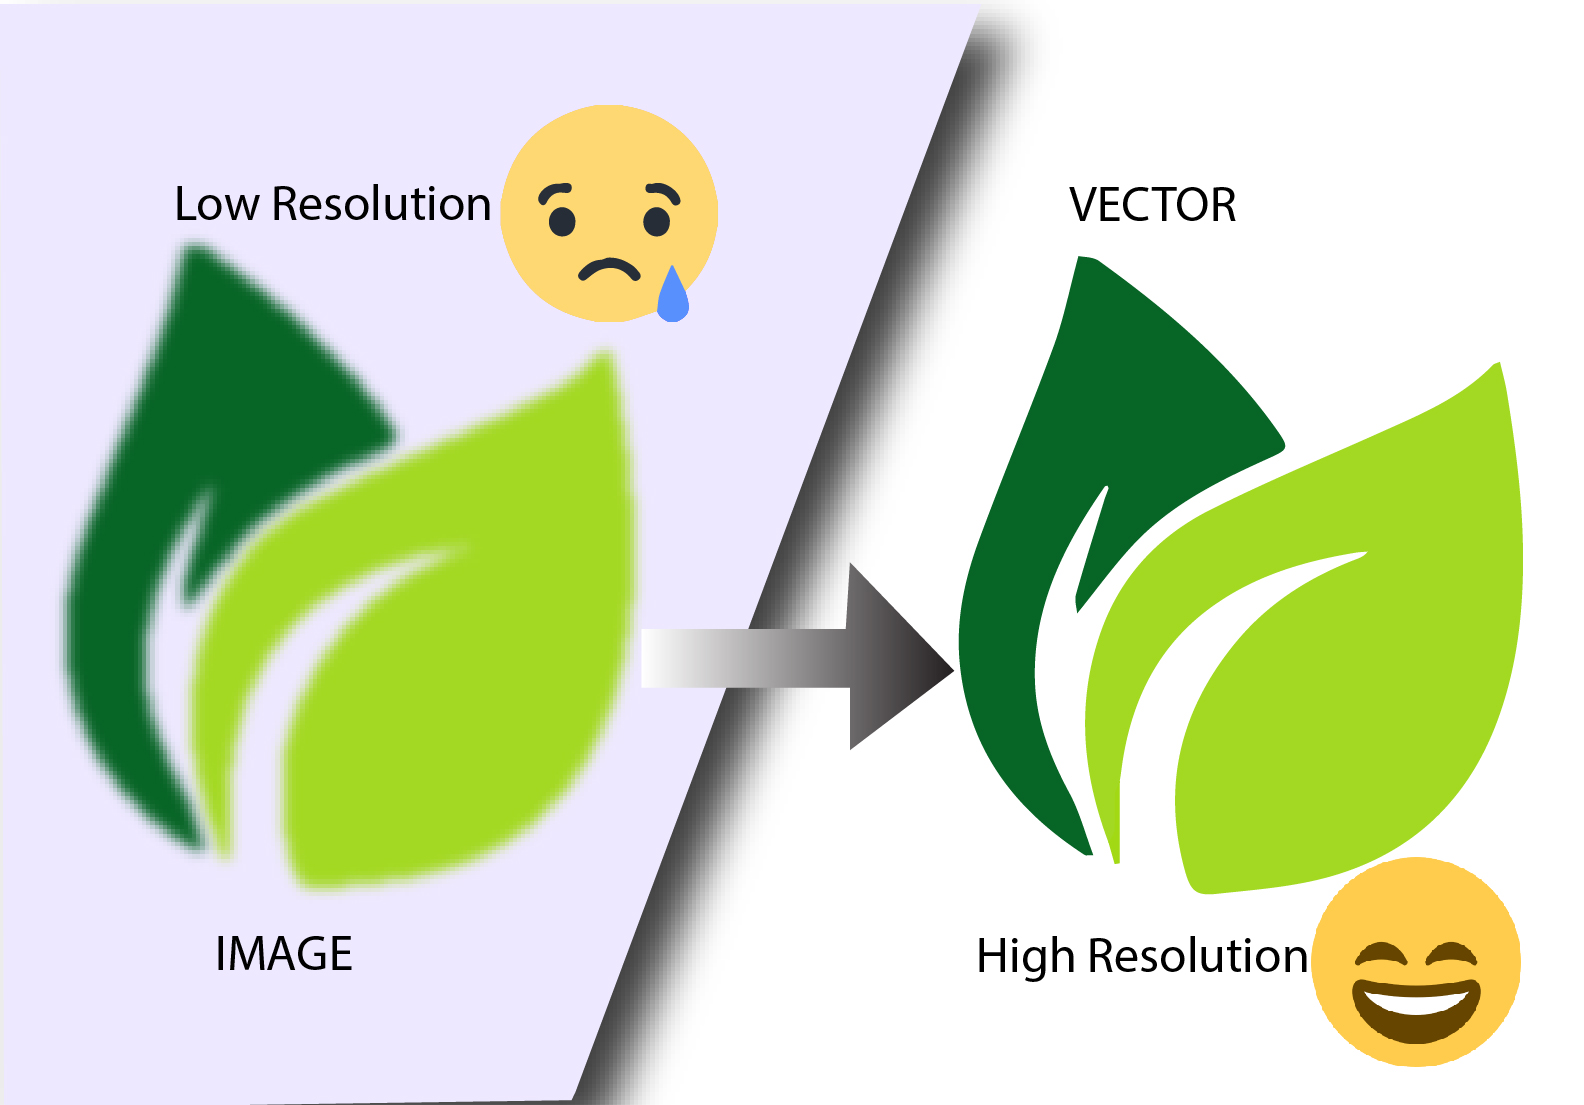 I will do vector tracing,  convert to vector logo,  image,  vectorise,  trace.